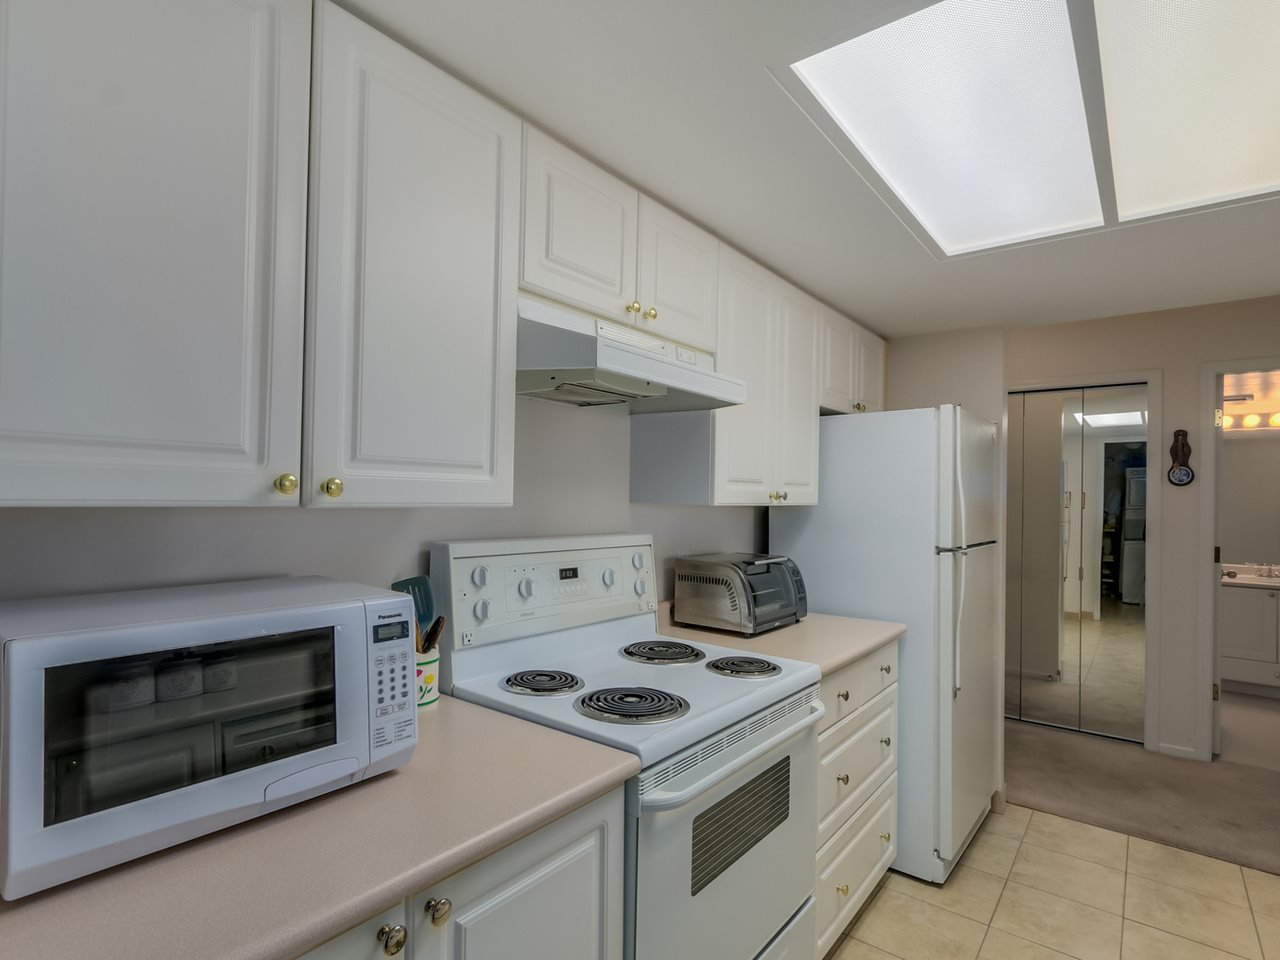 Photo 6: Photos: 403 728 PRINCESS Street in New Westminster: Uptown NW Condo for sale : MLS®# R2061685